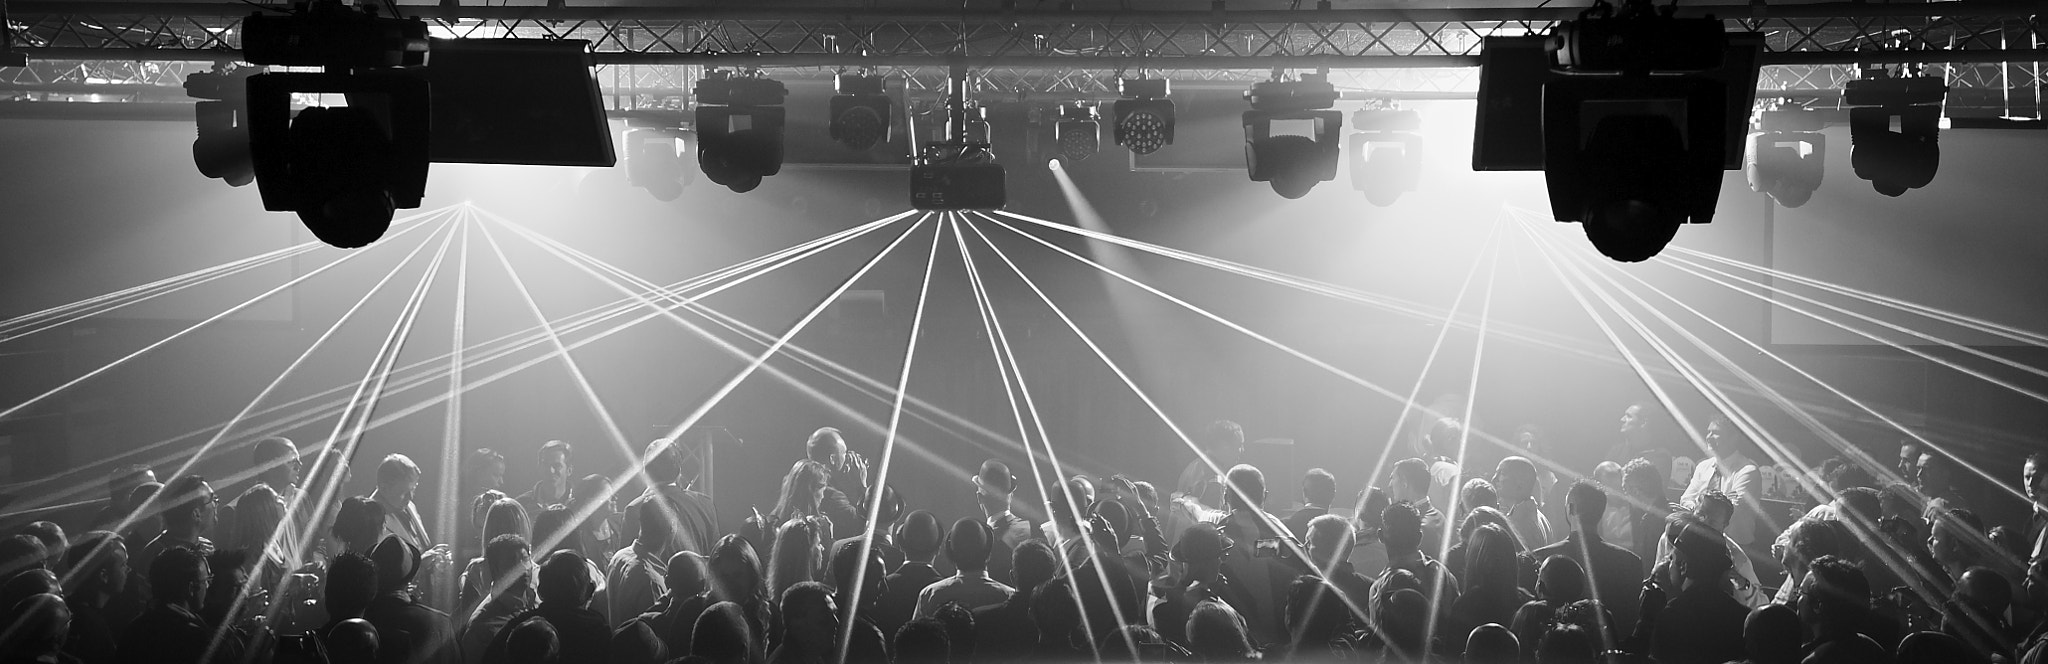 Photograph Ministry of Sound by Leanne Bouvet on 500px